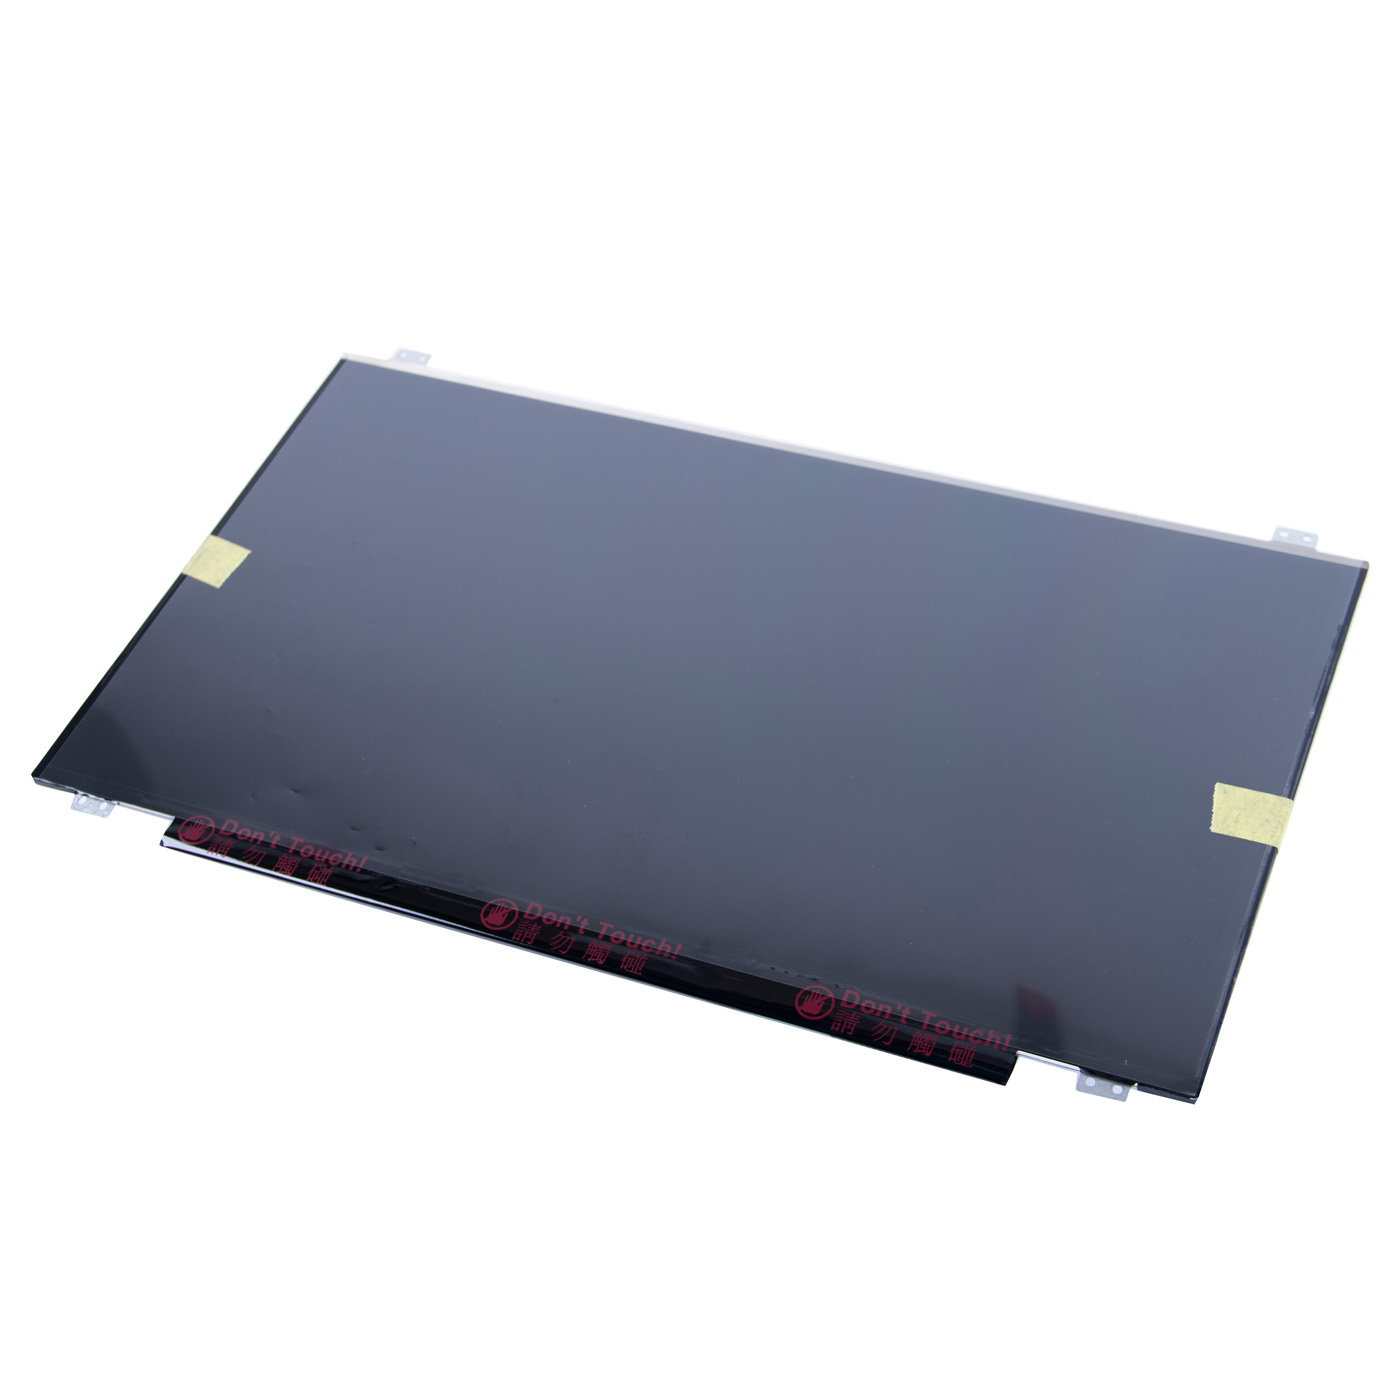 Matryca LCD Full HD IPS Lenovo ThinkPad P70 17.3 00HN885